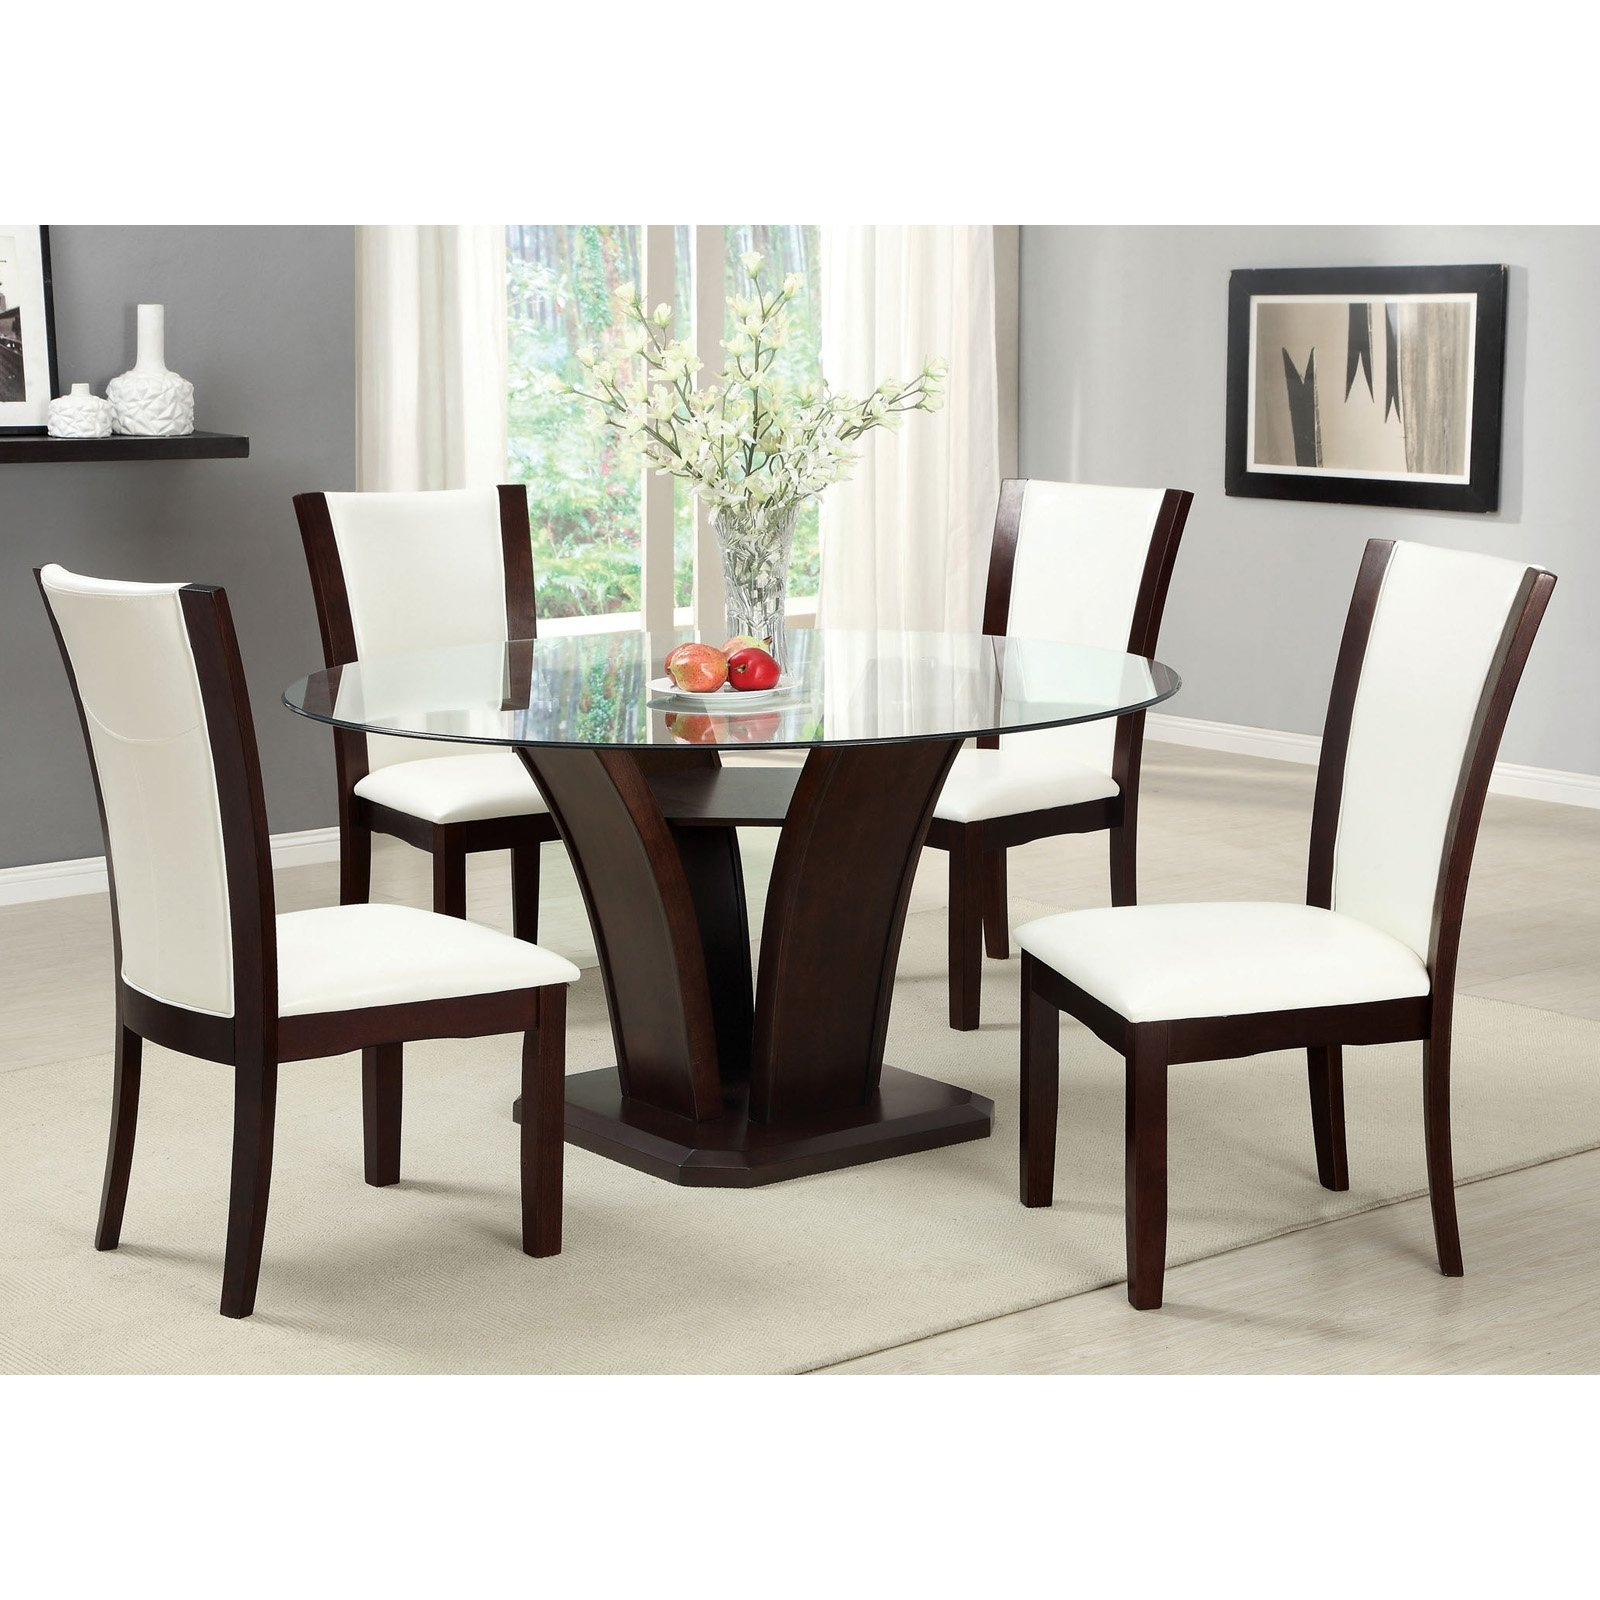 Well Known Furniture Of America Lavelle 5 Piece Glass Top Dining Set – Dark With Regard To Jensen 5 Piece Counter Sets (View 7 of 25)